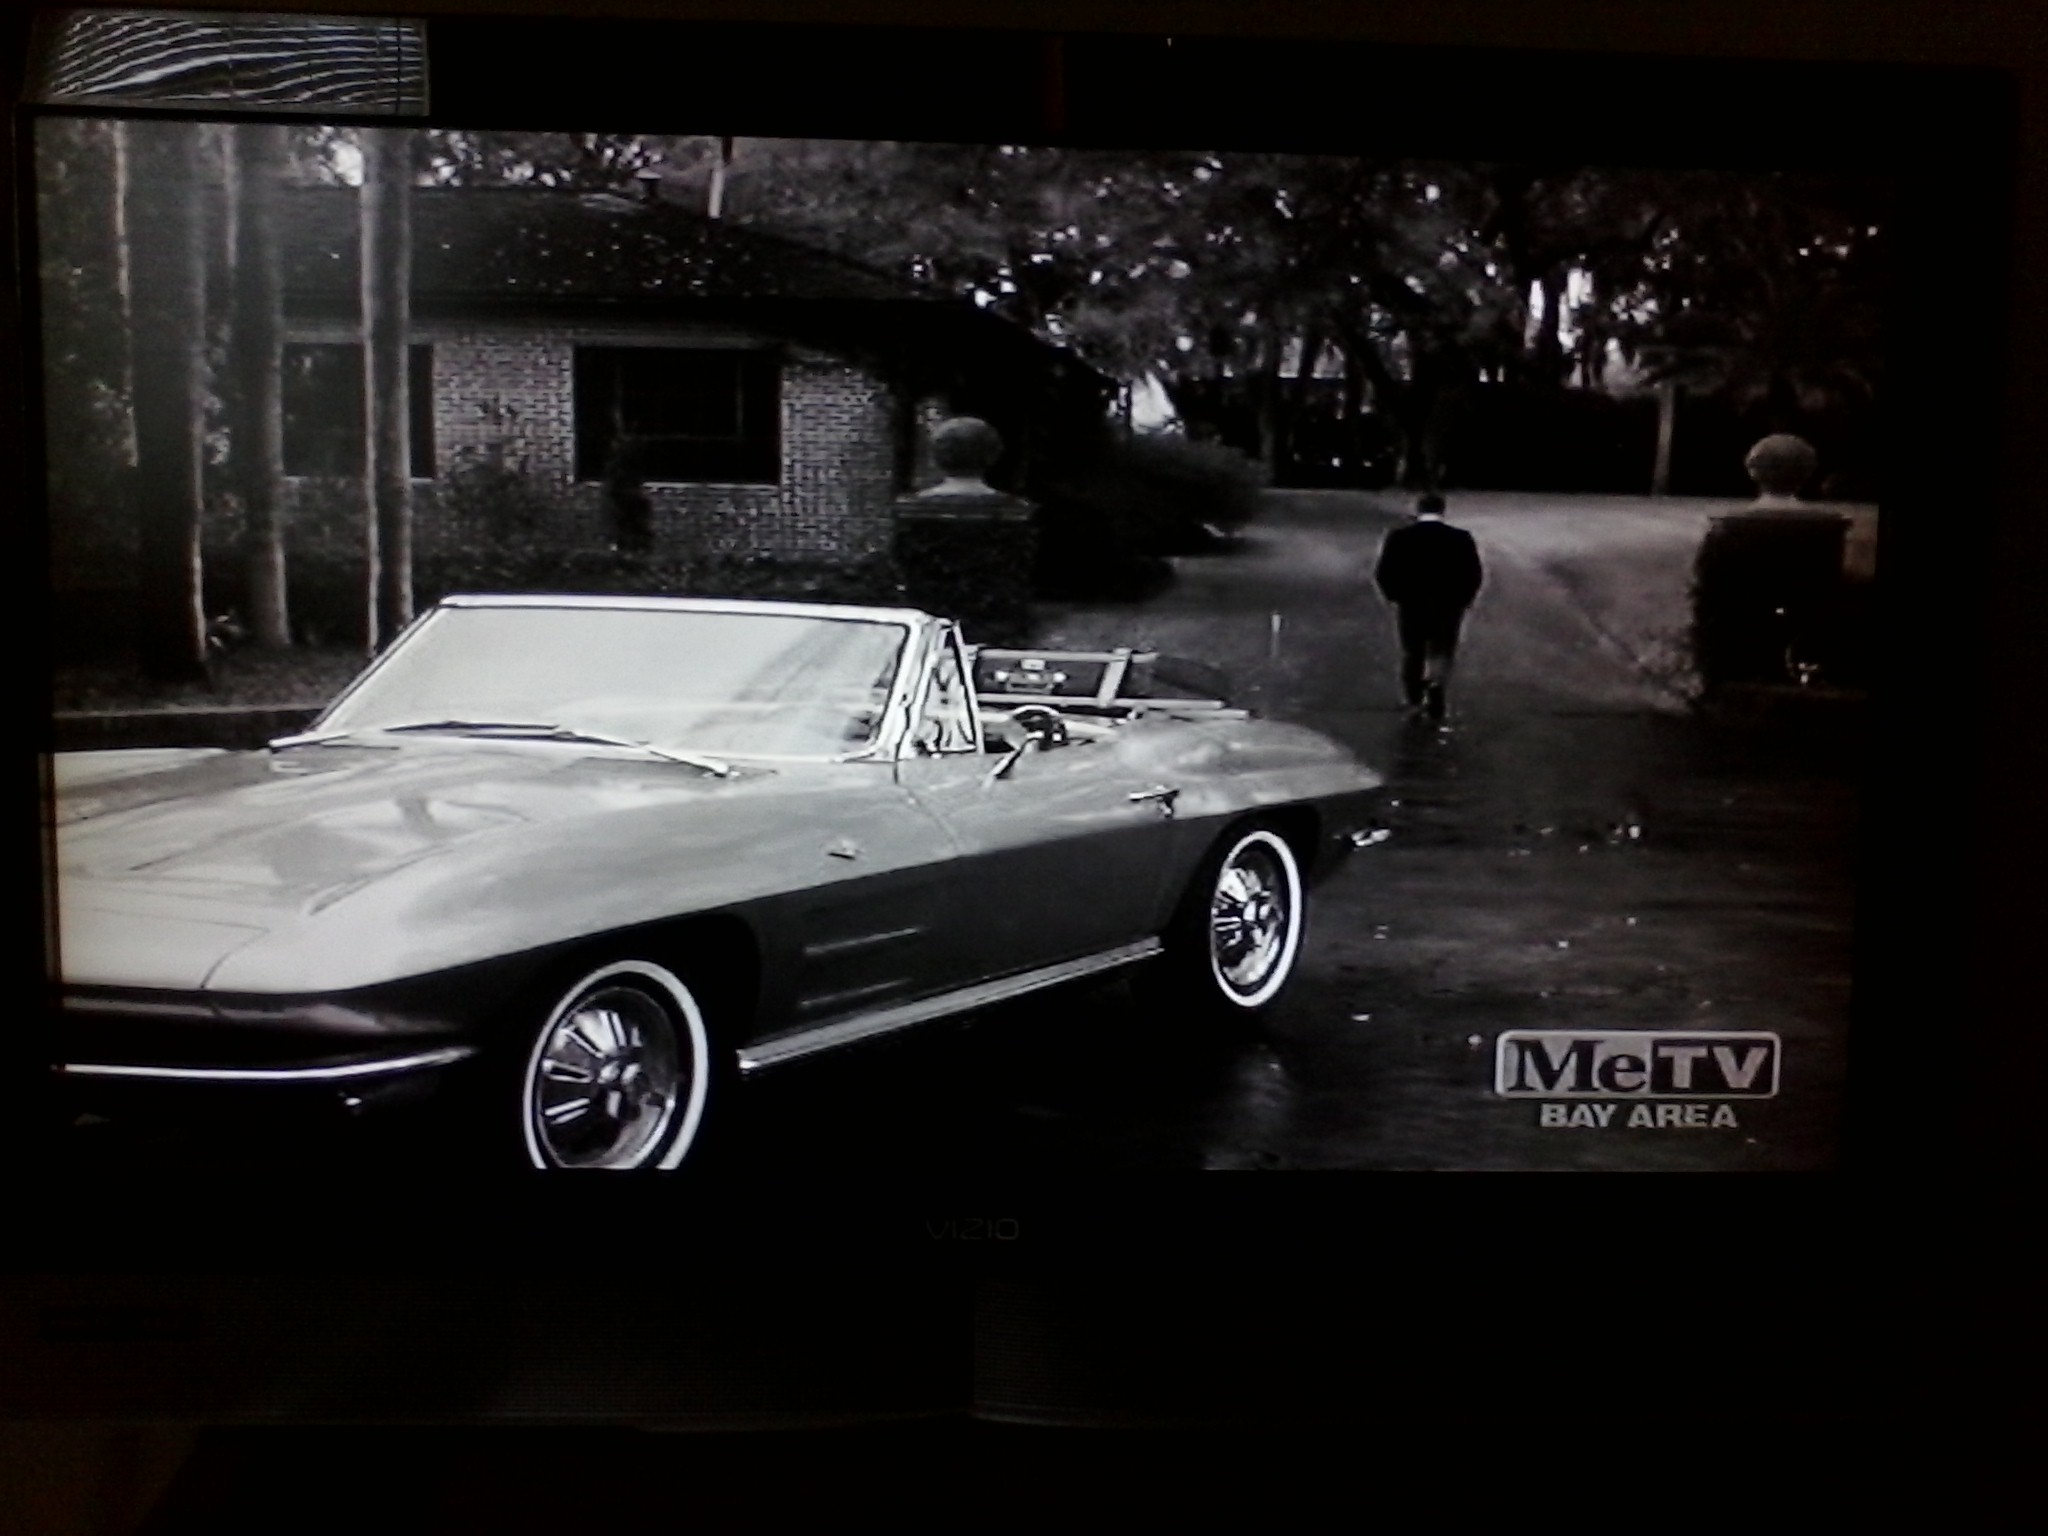 TheLastEpisodeofRoutehtm - Route 66 tv show car